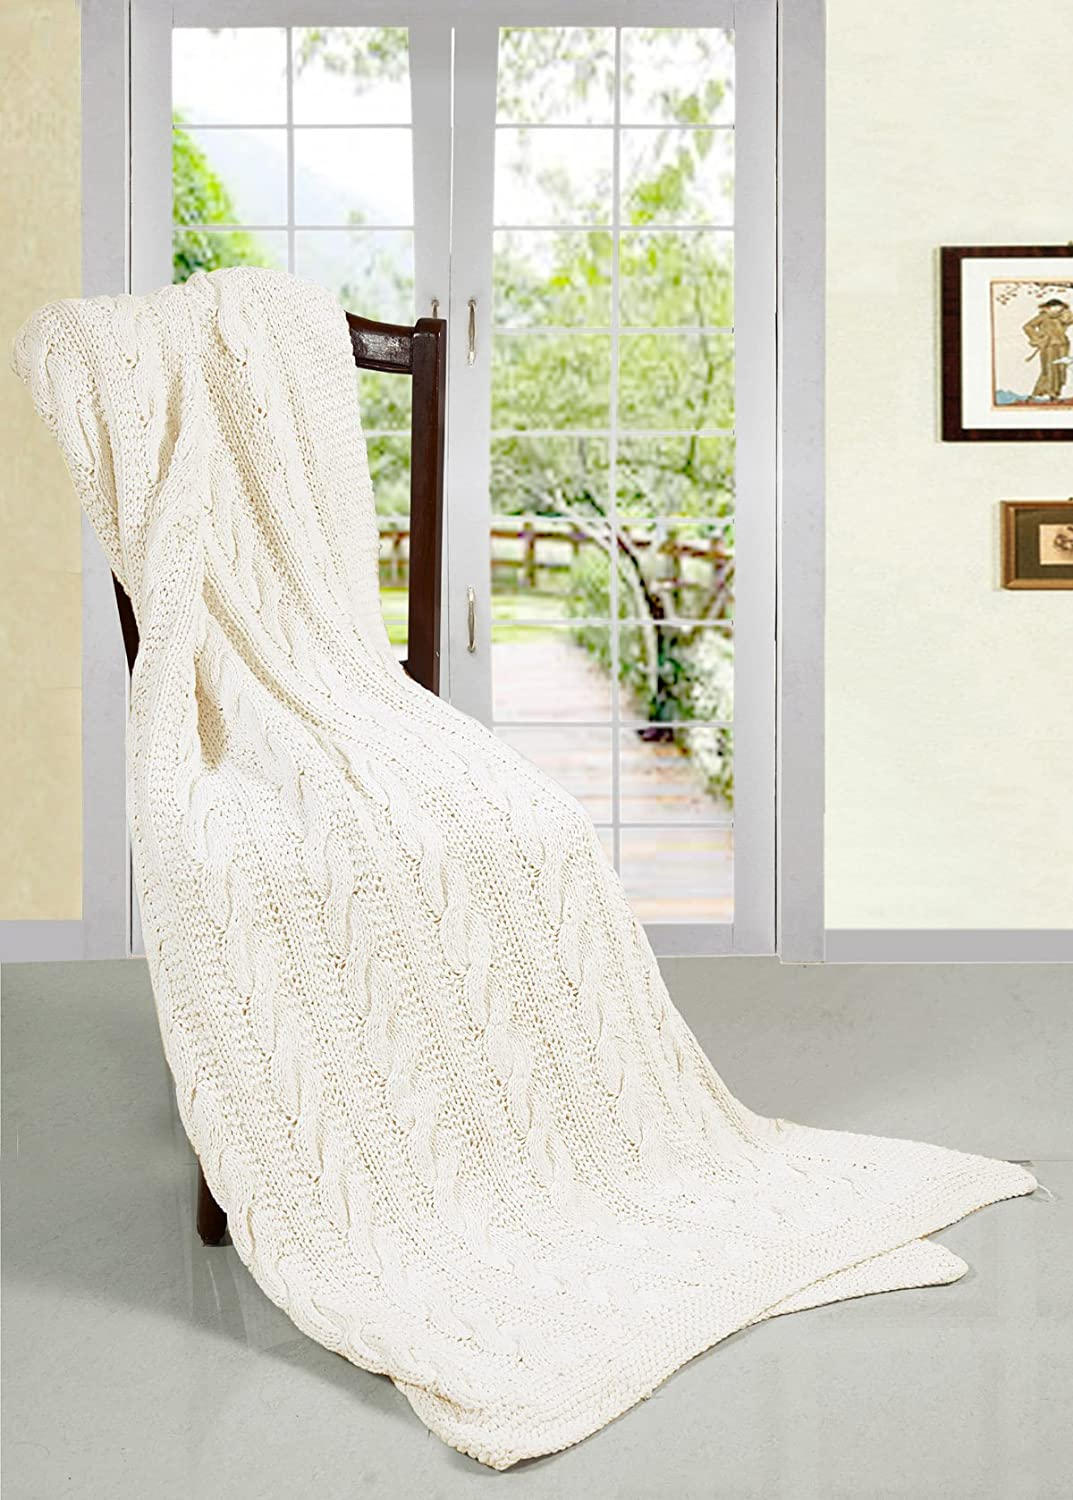 EHC Super Chunky Hand Knitted Cotton Blanket Bed Throw, Cream Elitehousewares E9-HKT1215CR